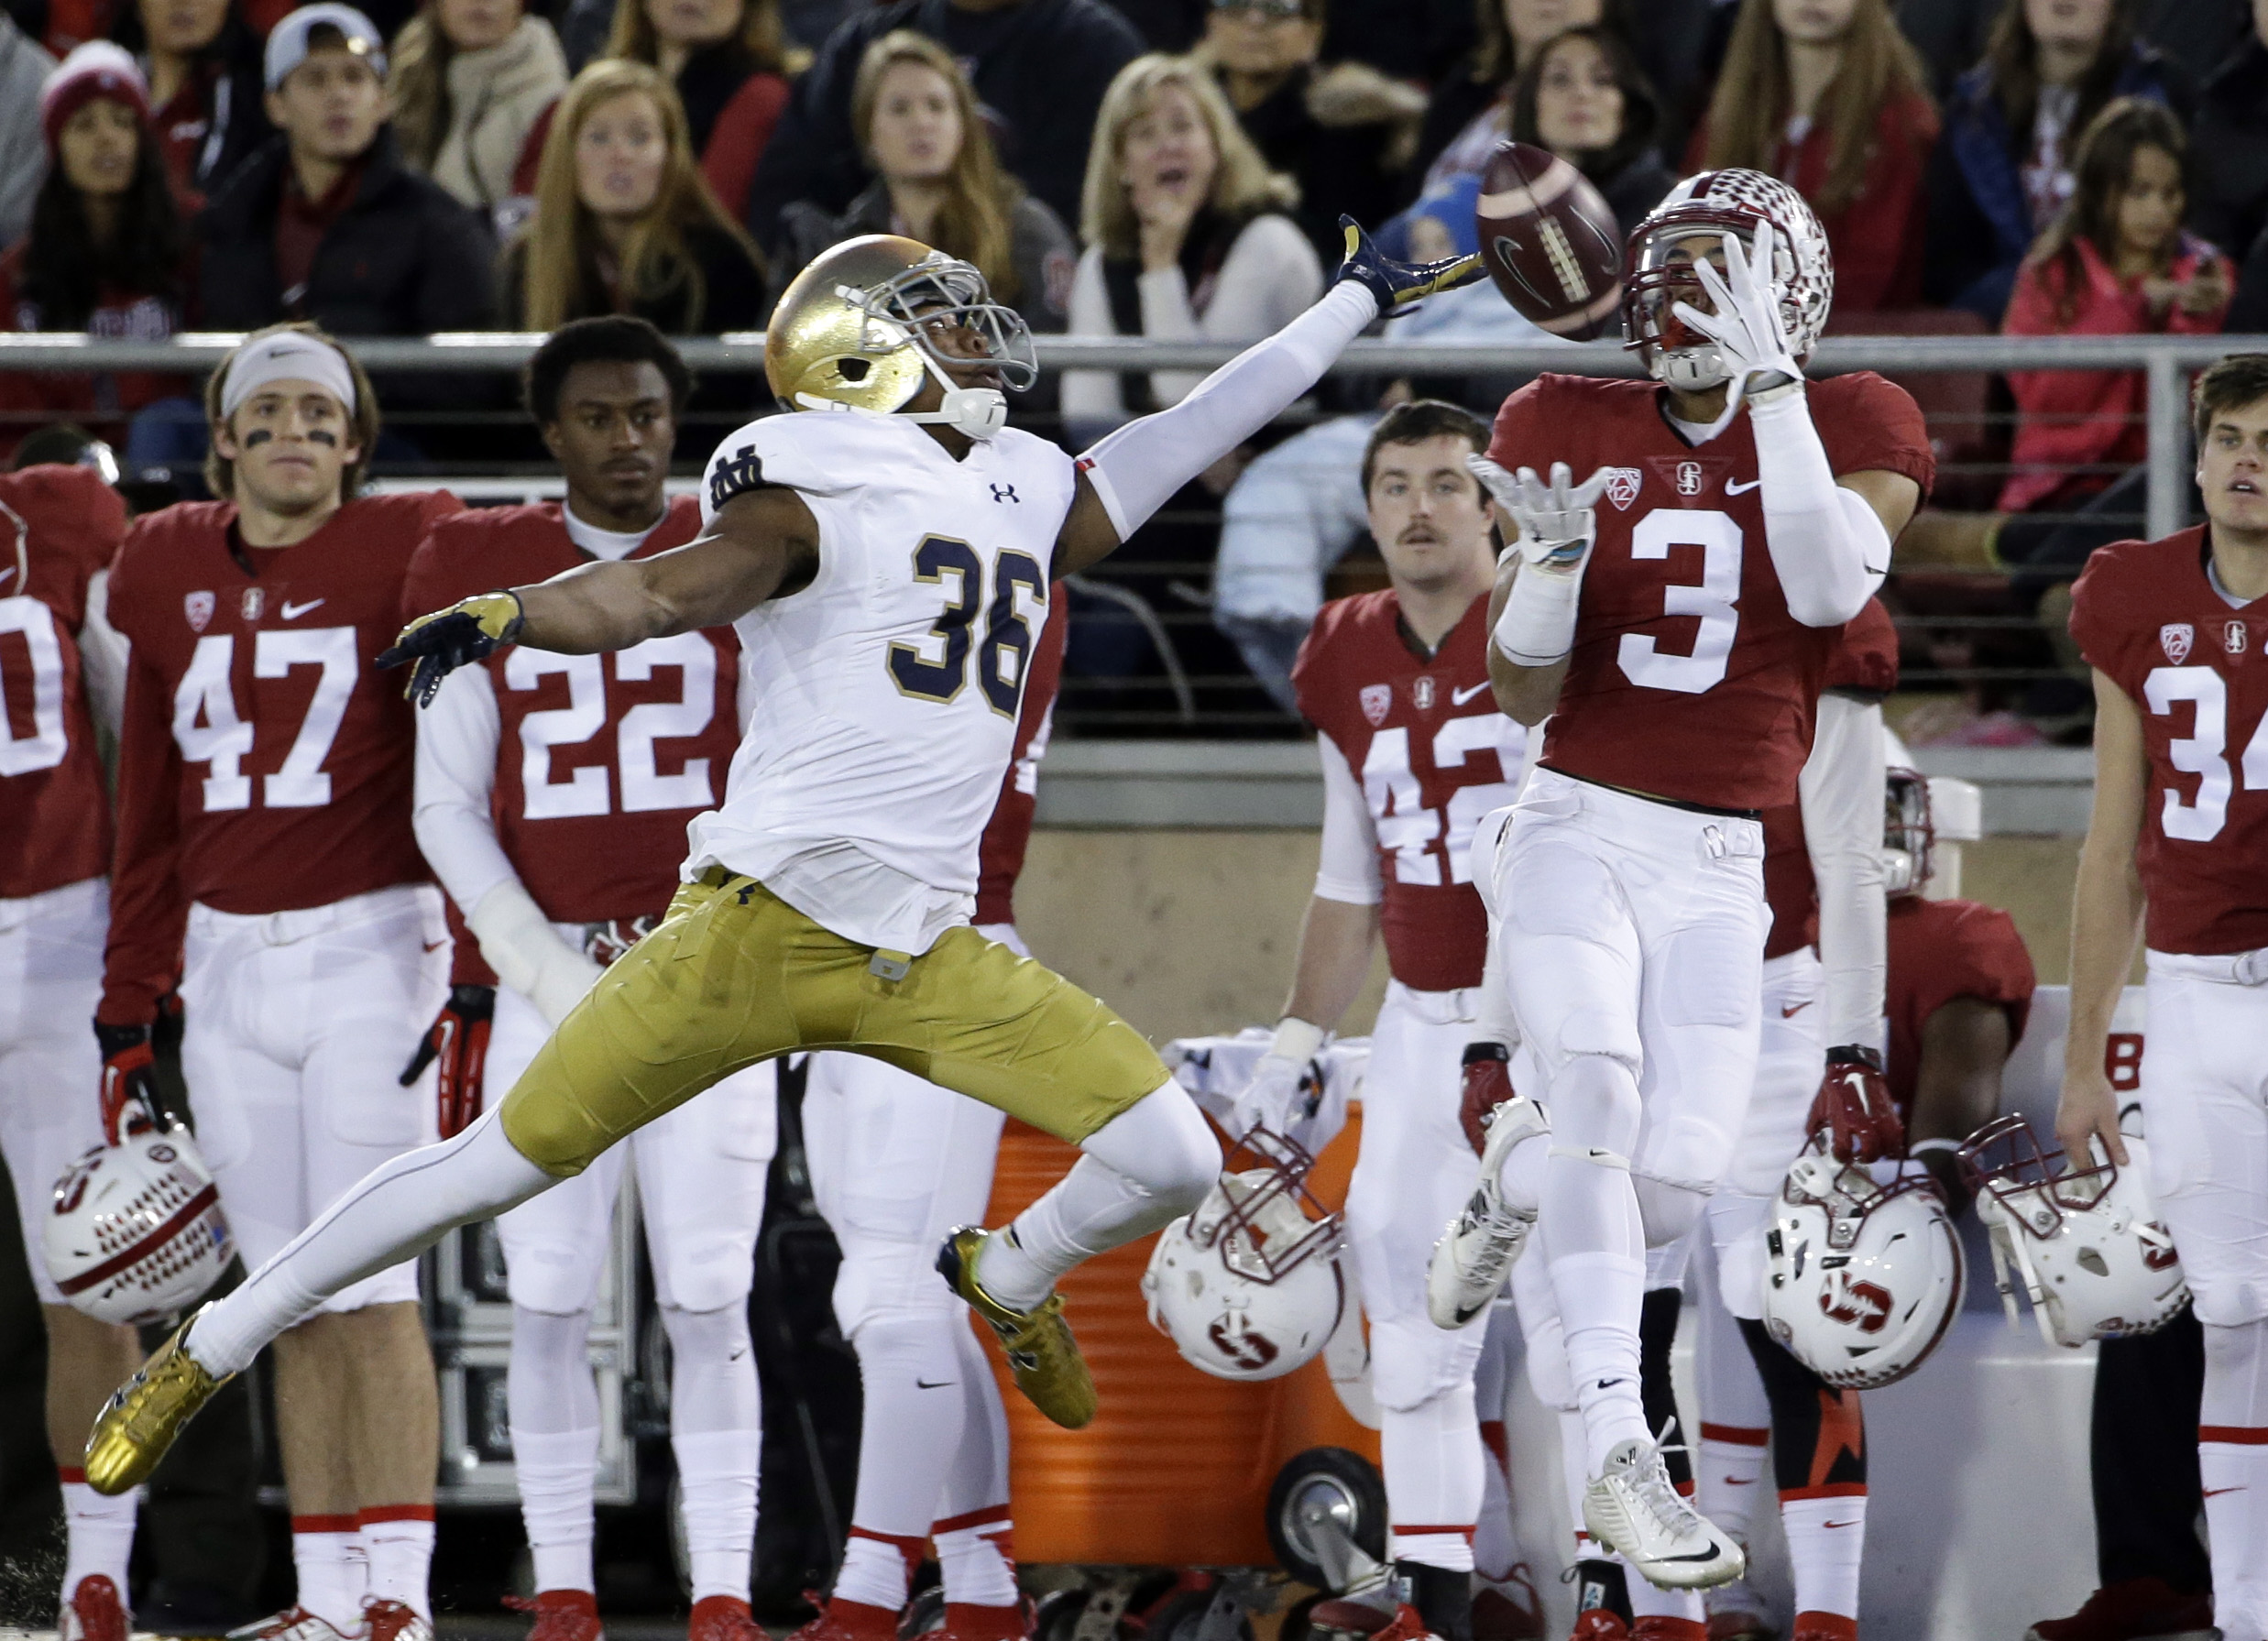 stanford notre dame score www college football